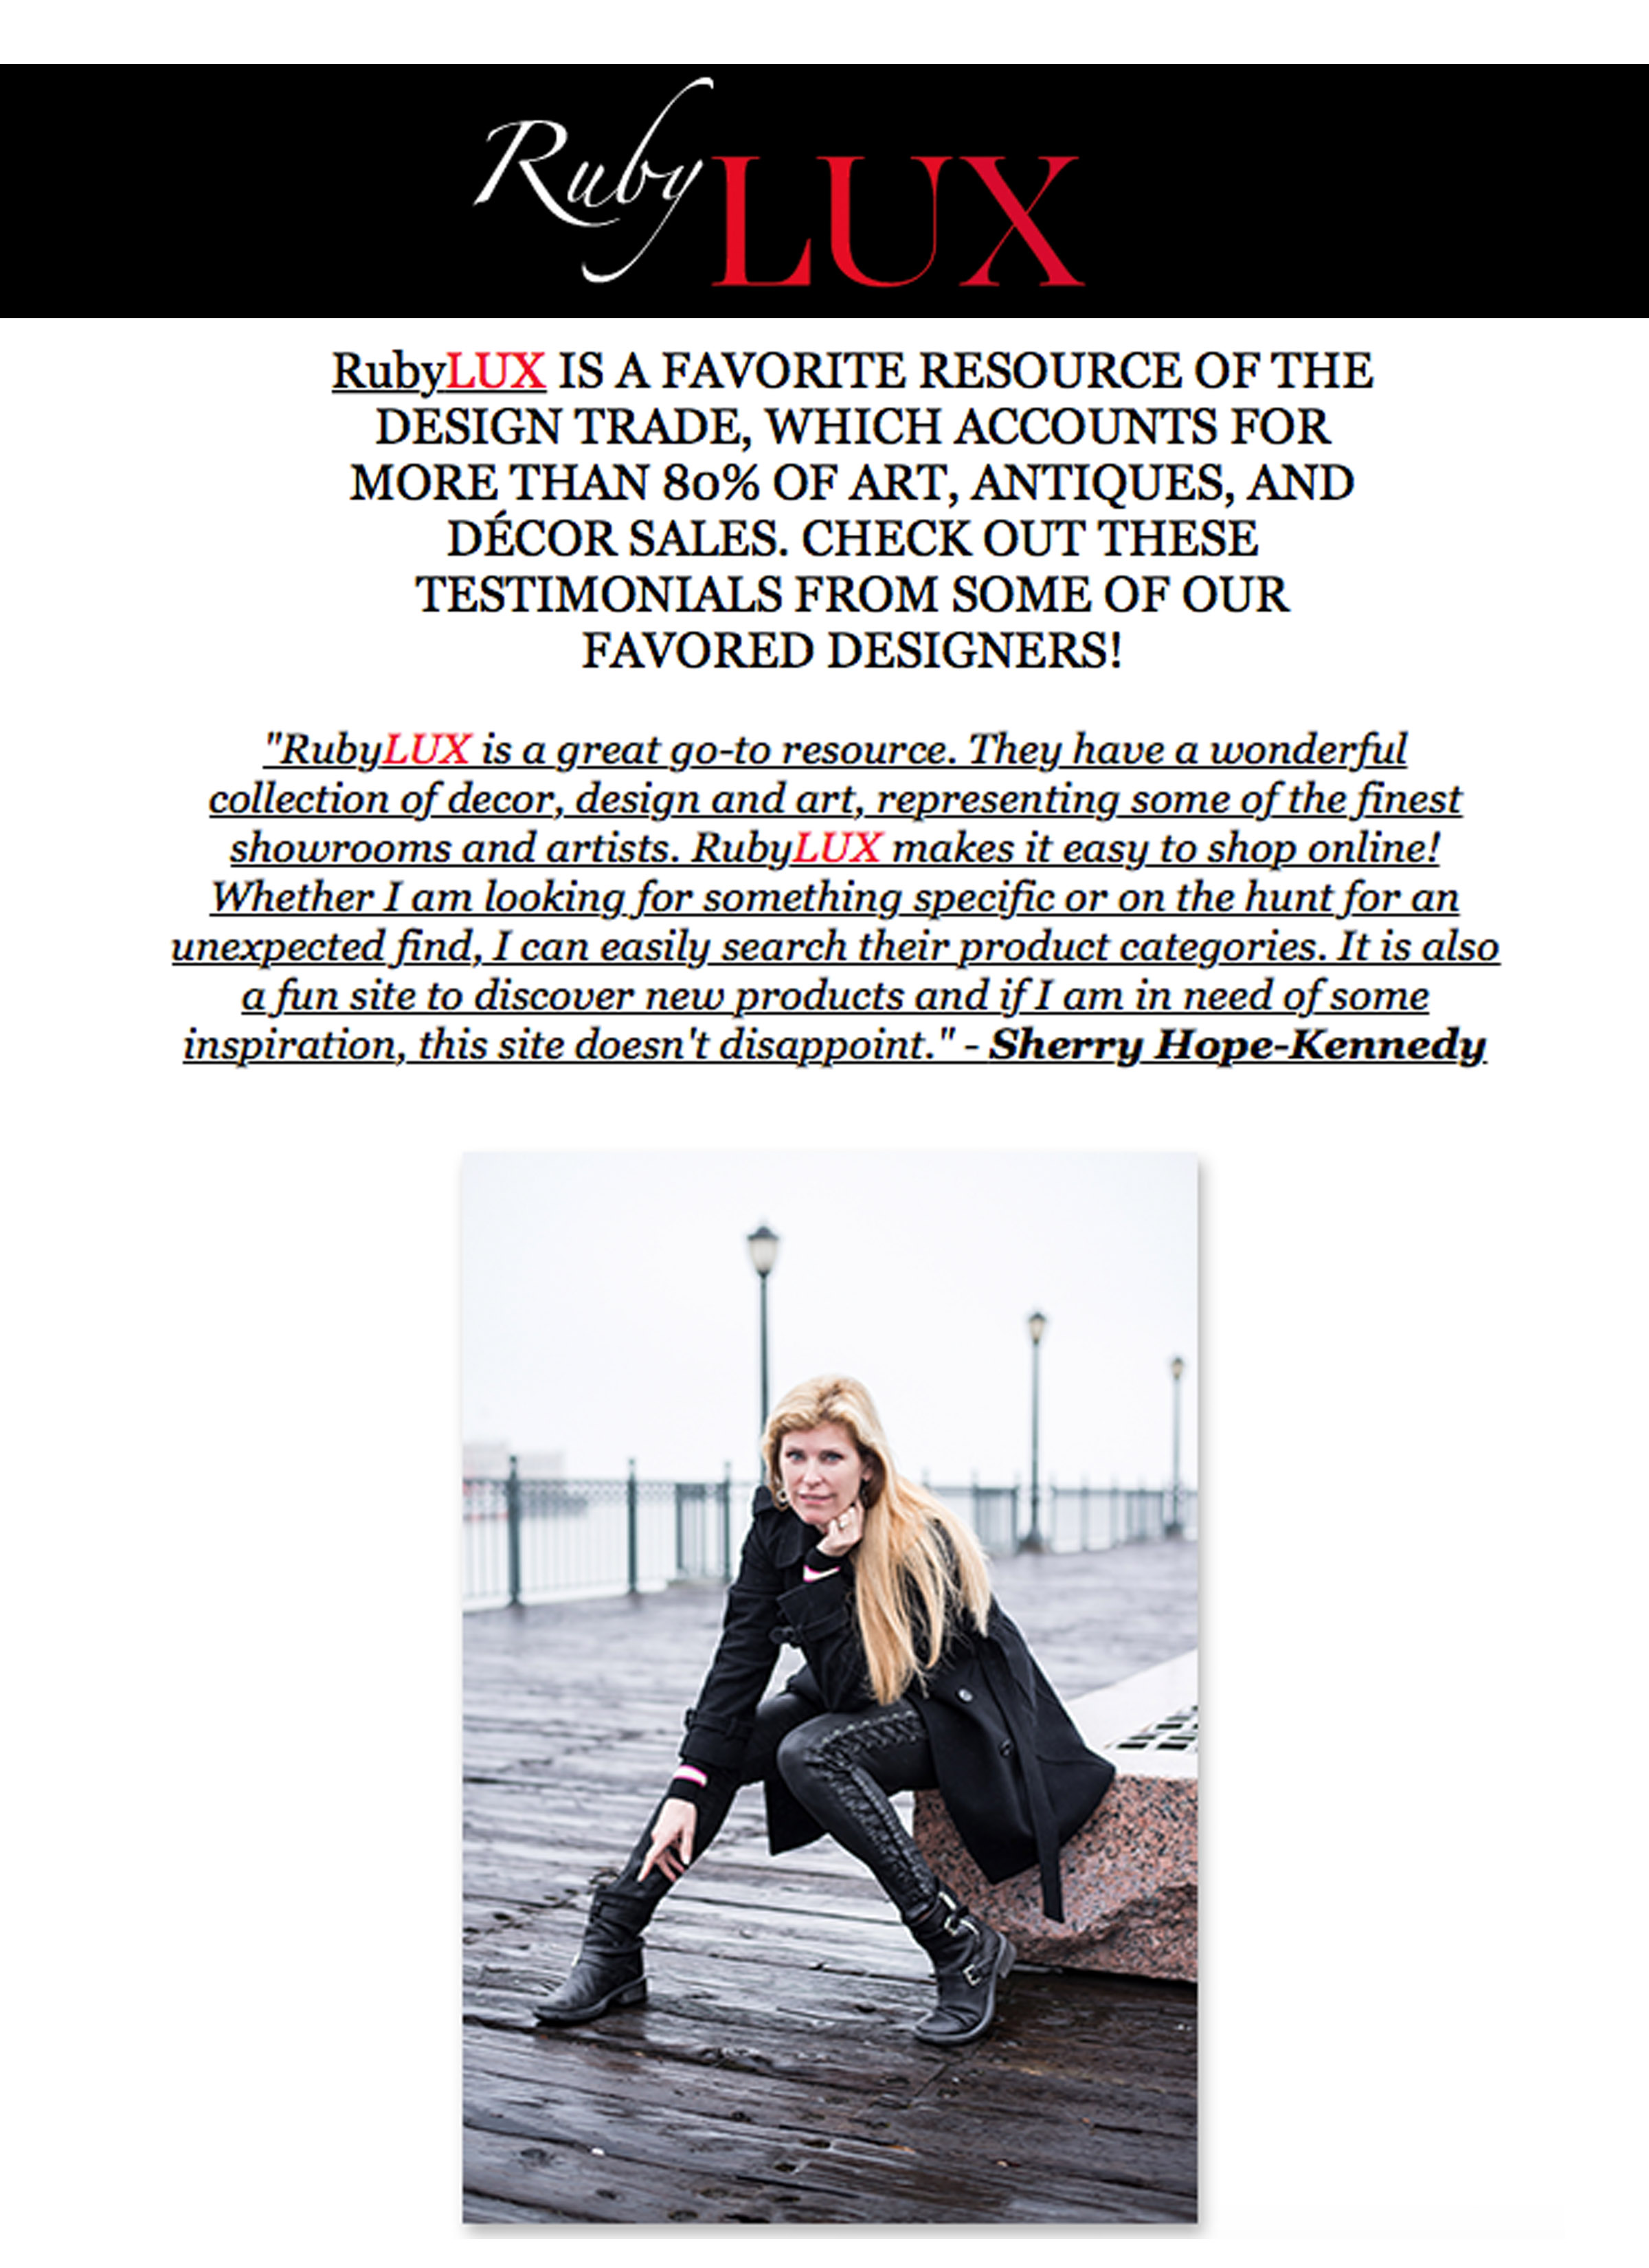 RubyLux eNews - Sherry shares why she likes RubyLux in their eNewsletter